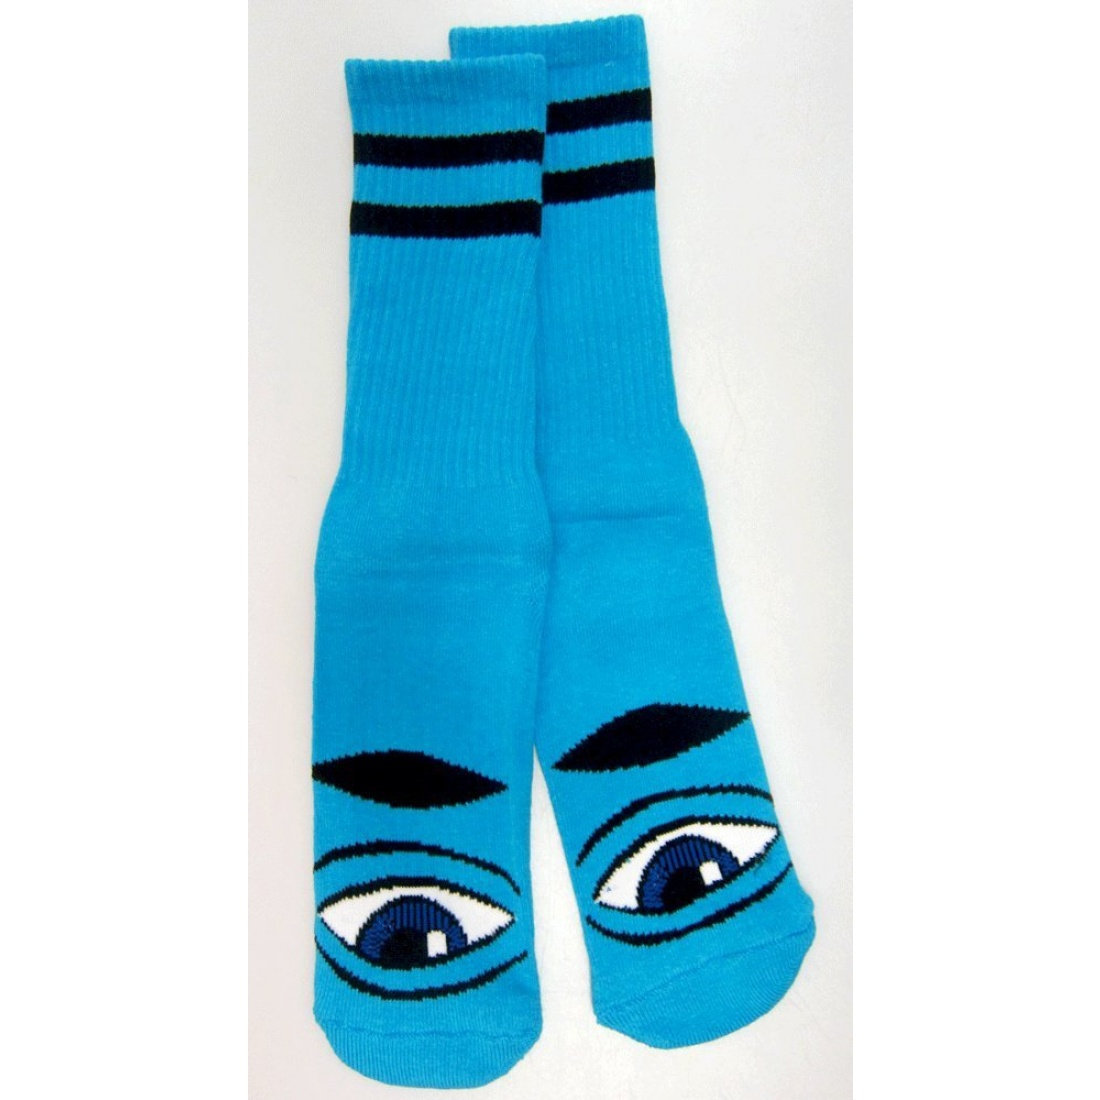 TM-SECT EYE SOCK III SOCK BLUE